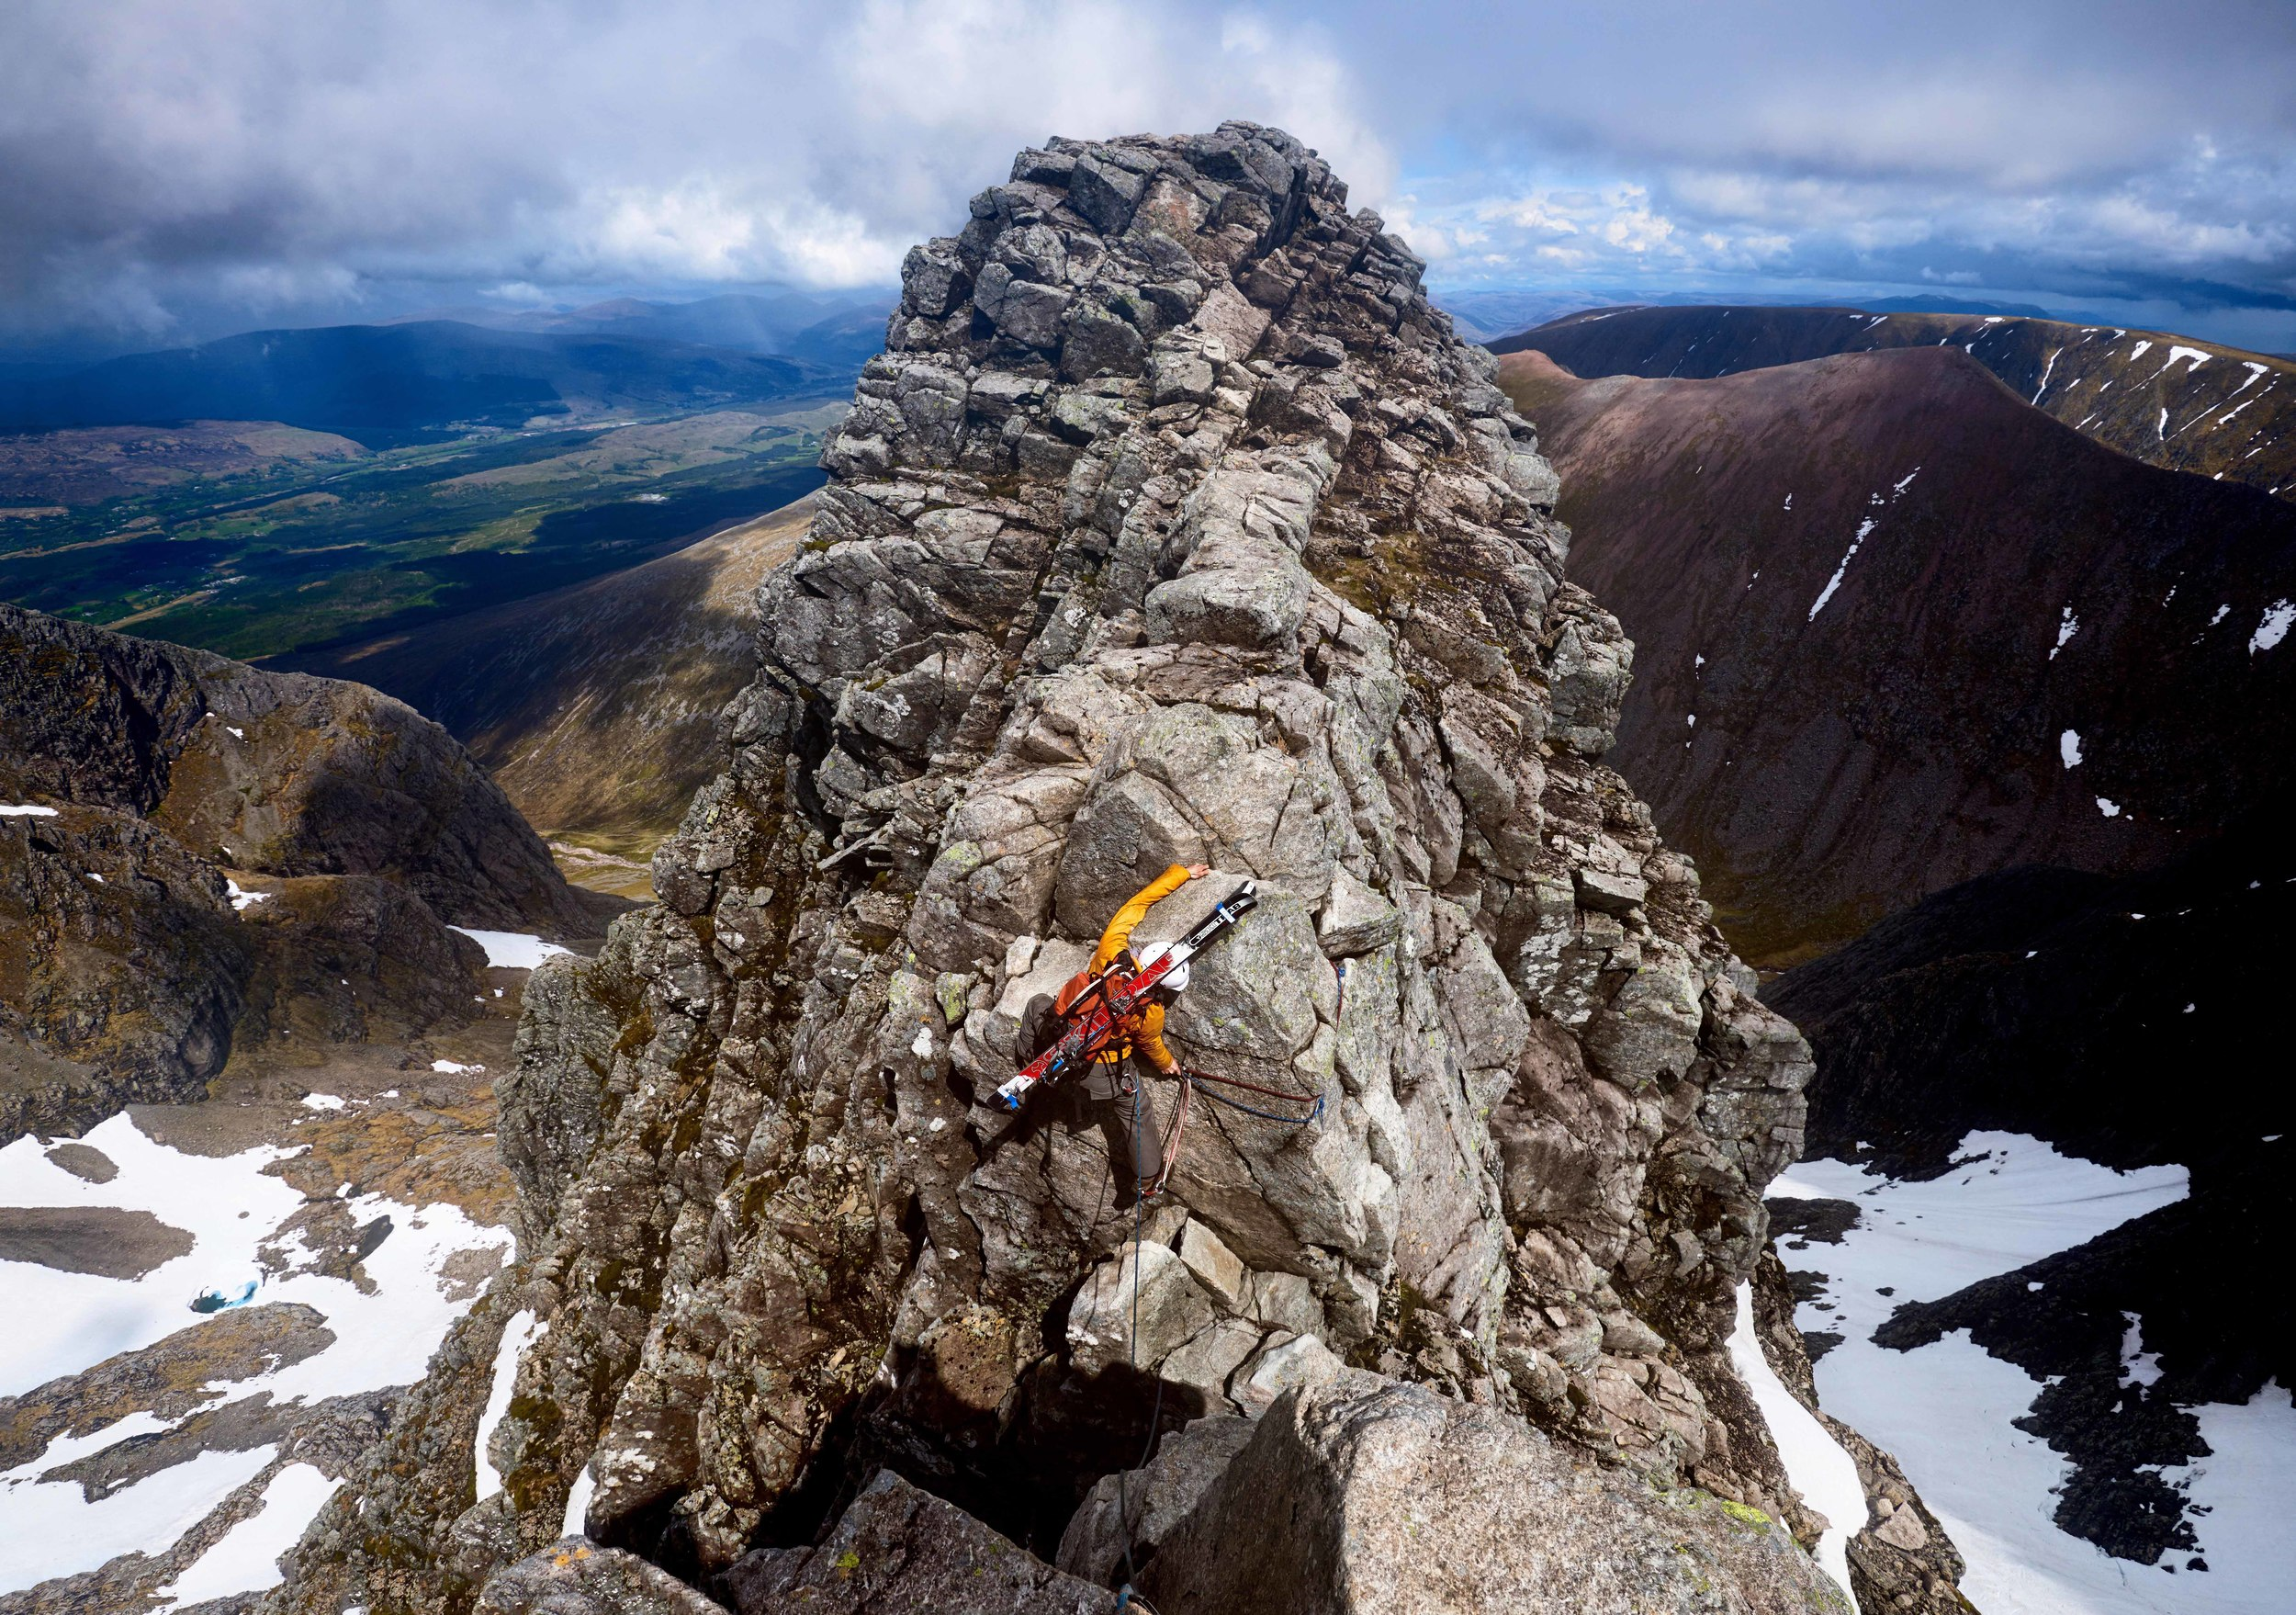 Blair Aitken negotiating Tower Gap during a successful attempt on the Tower Double - one of the top UK ski mountaineering prizes